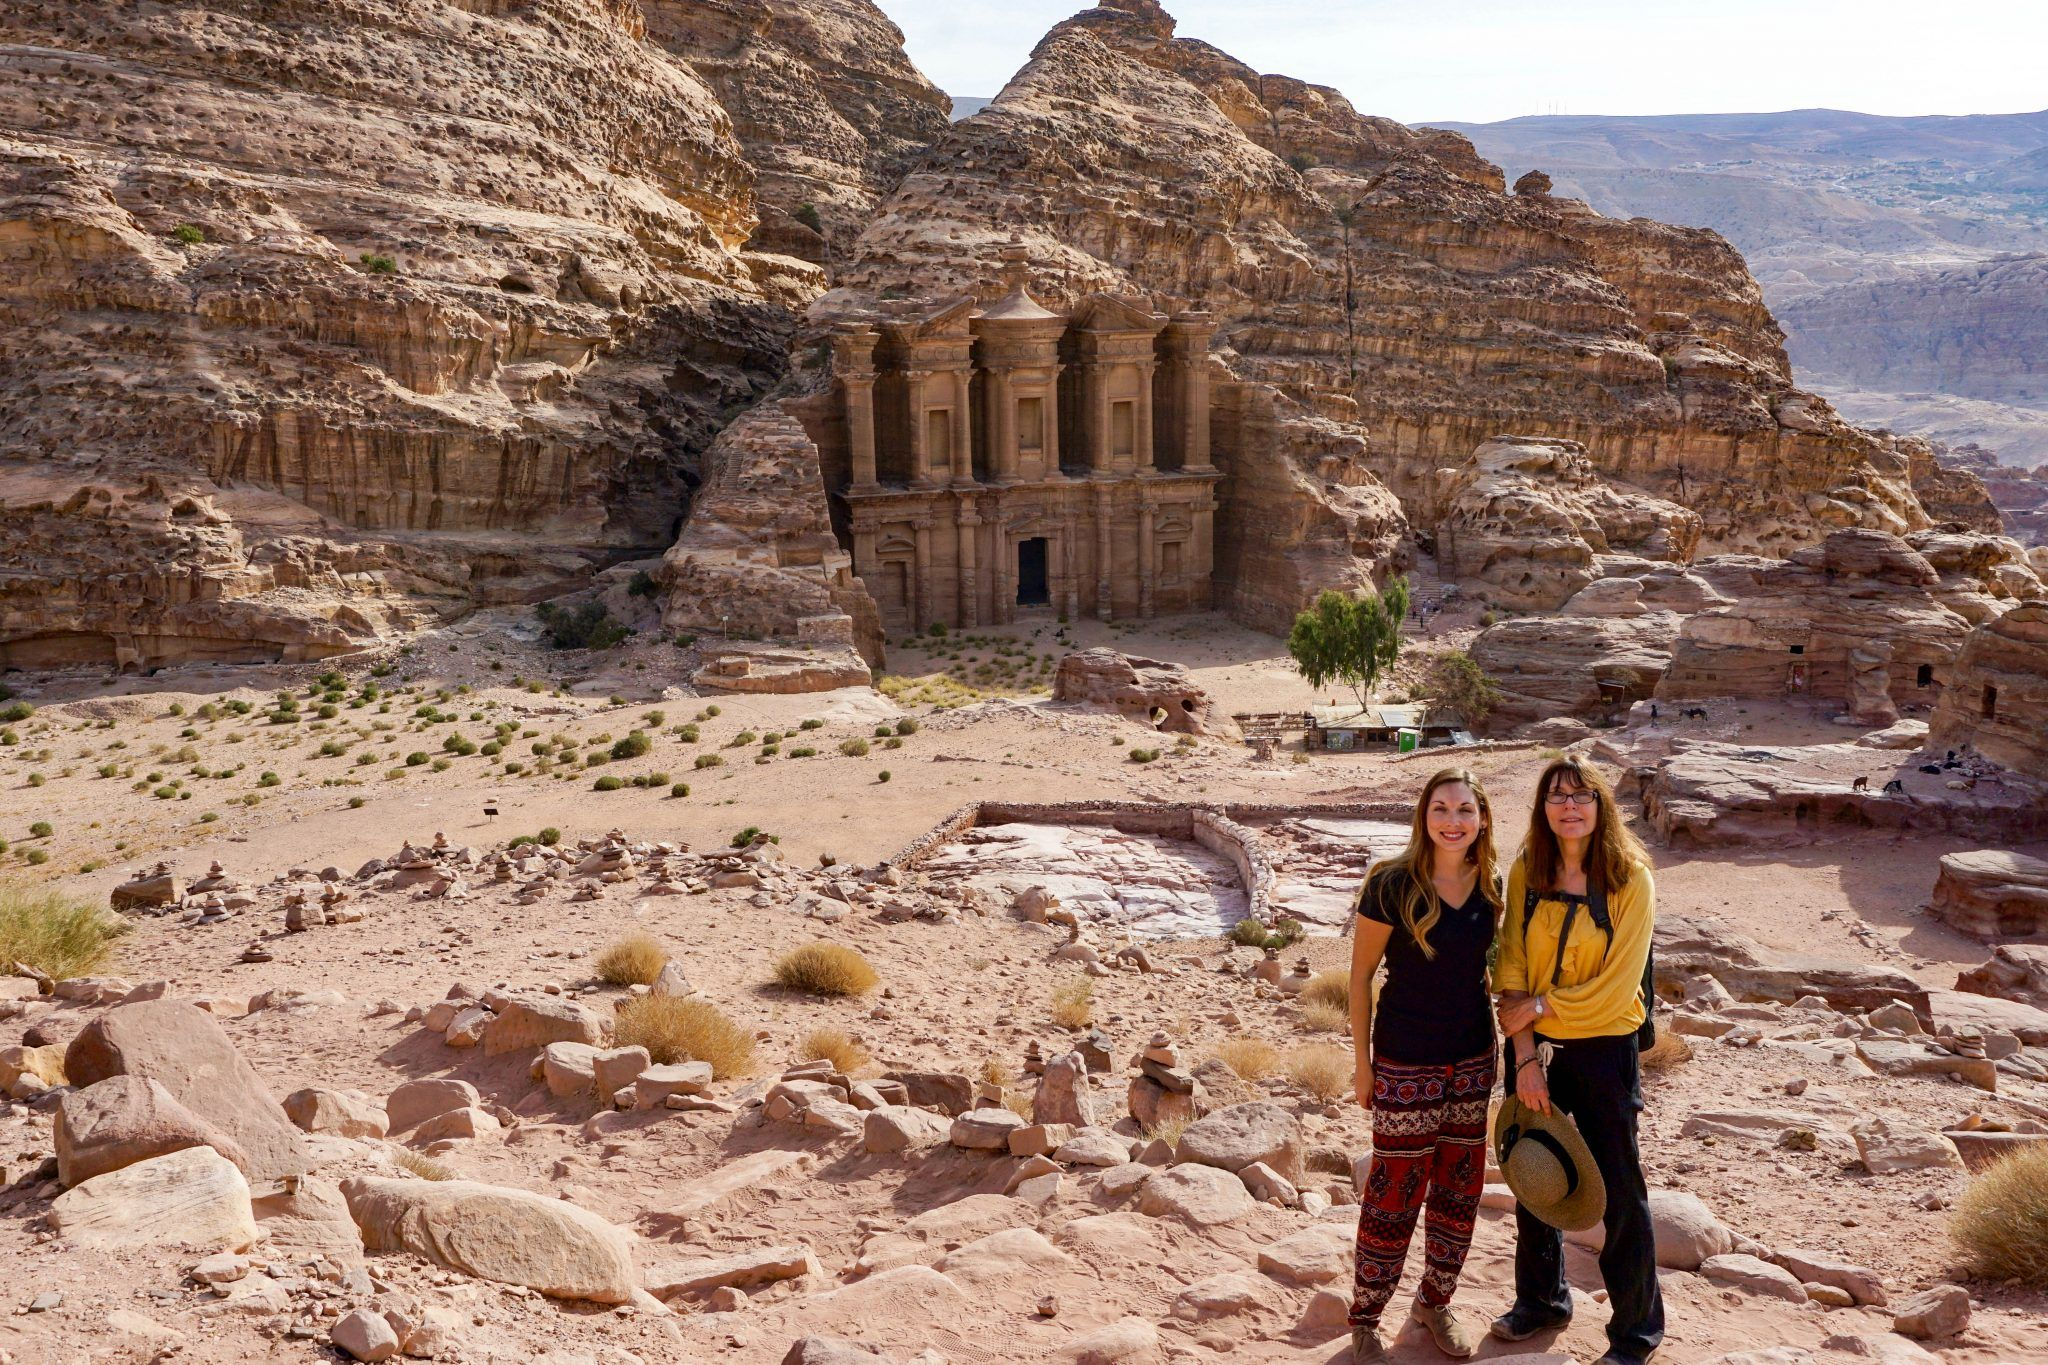 New Year's Eve in Jordan 2020 Must-see places & attractions places